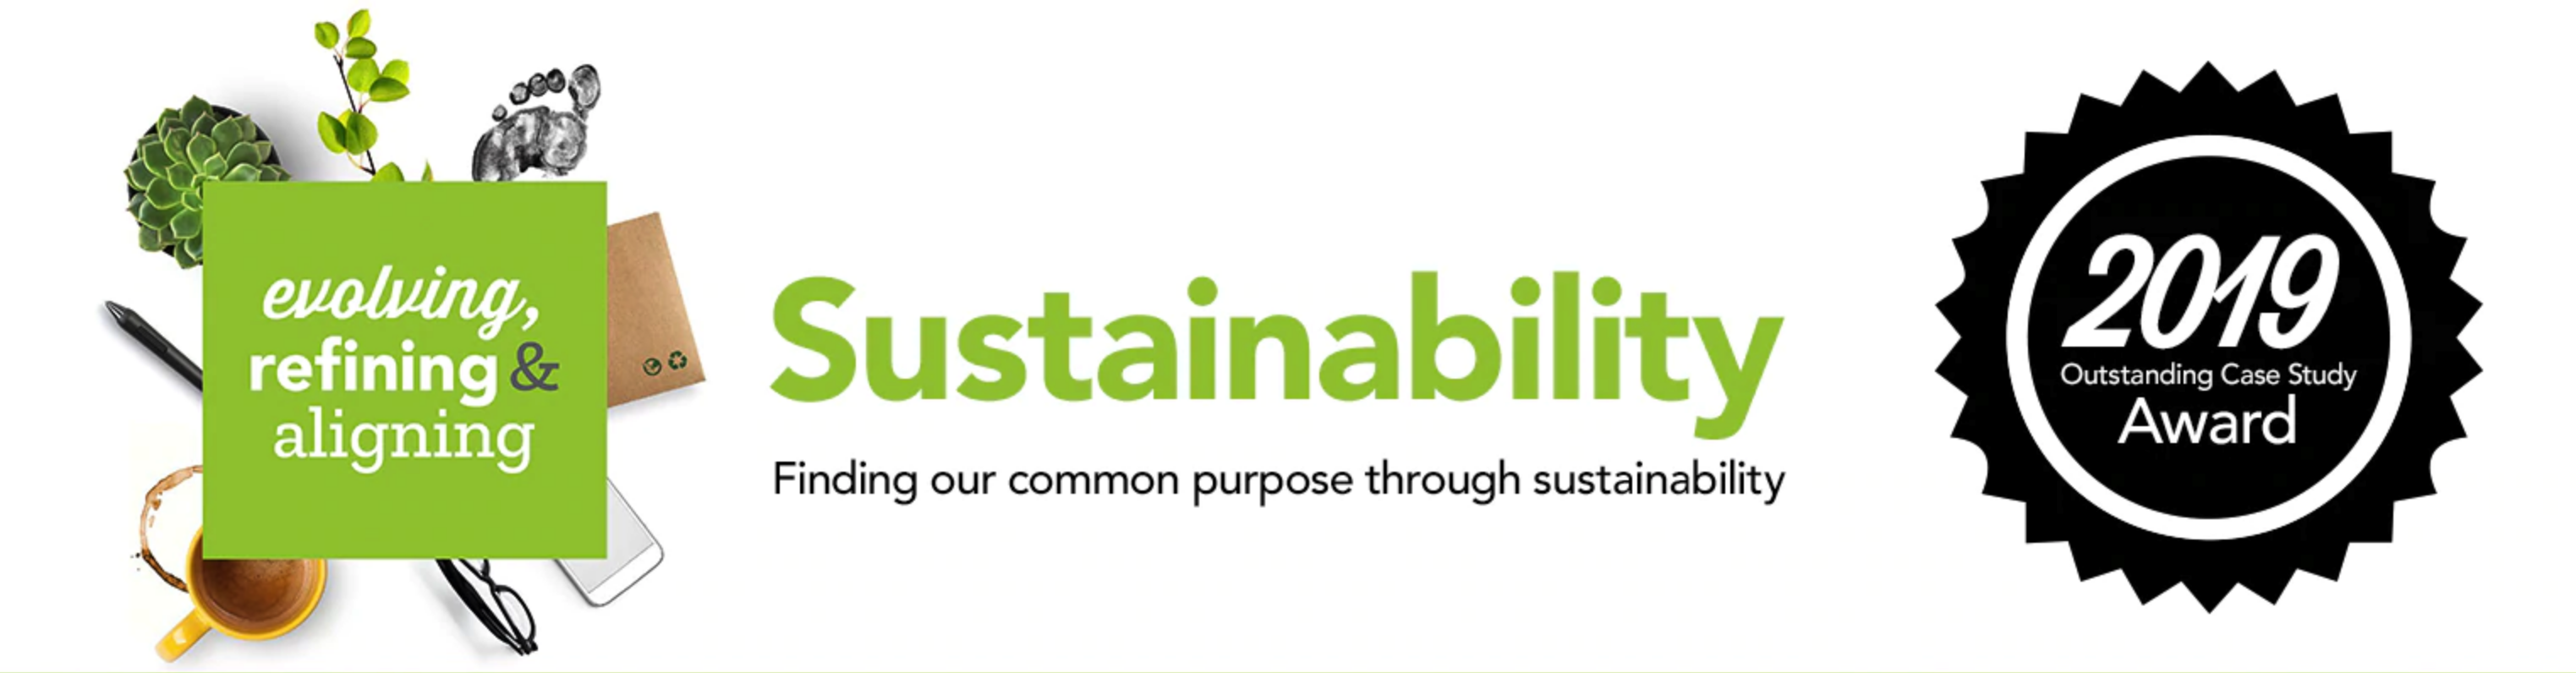 Sustainability: Finding our common purpose through sustainability